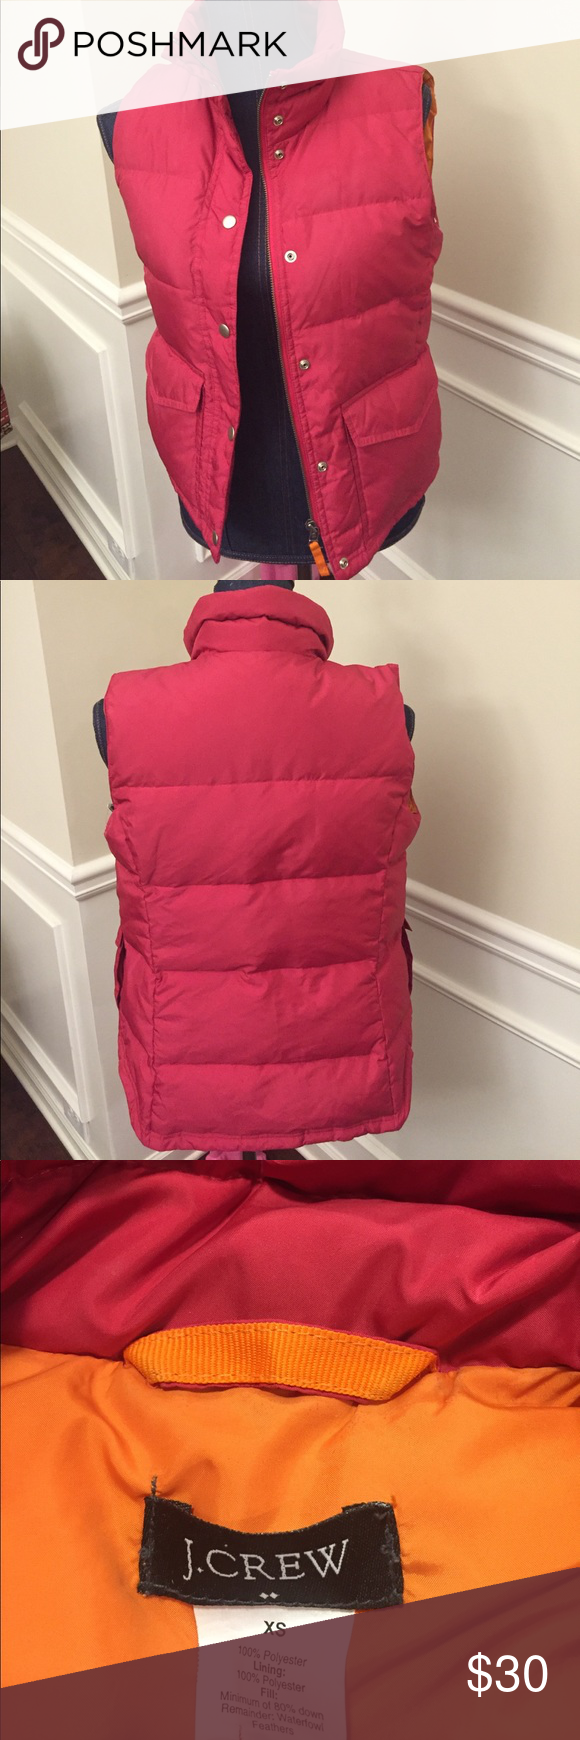 J crew👍 Pinkish color used one time in great condition jcrew Jackets & Coats Vests